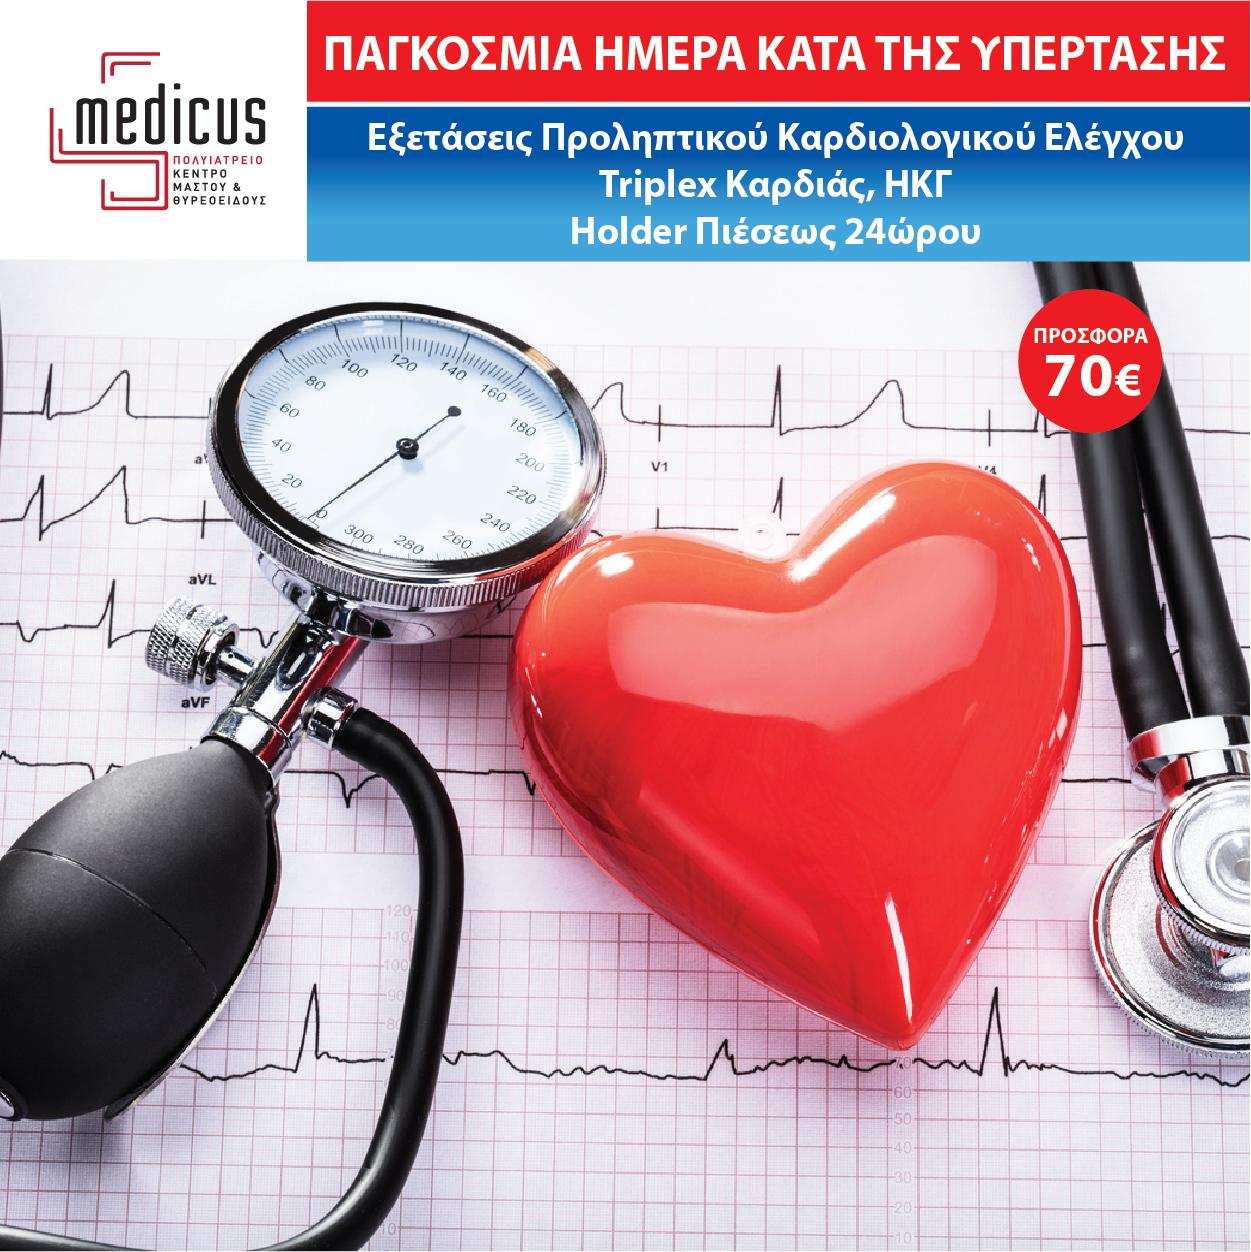 cardiac hypertension checkup for the month of May